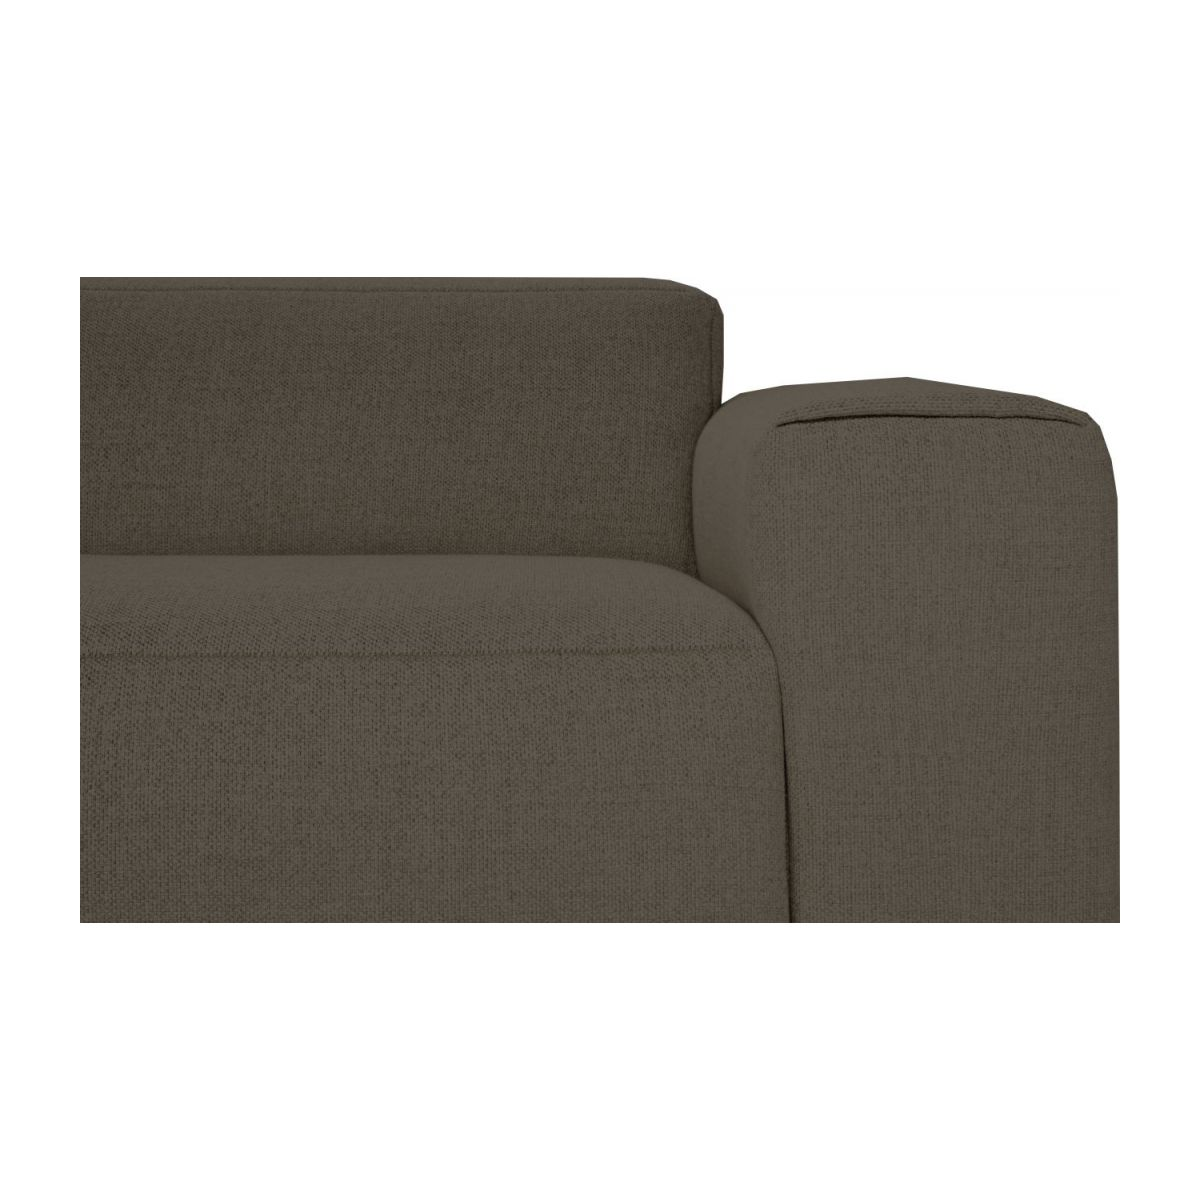 2 seater sofa in Lecce fabric, muscat n°4